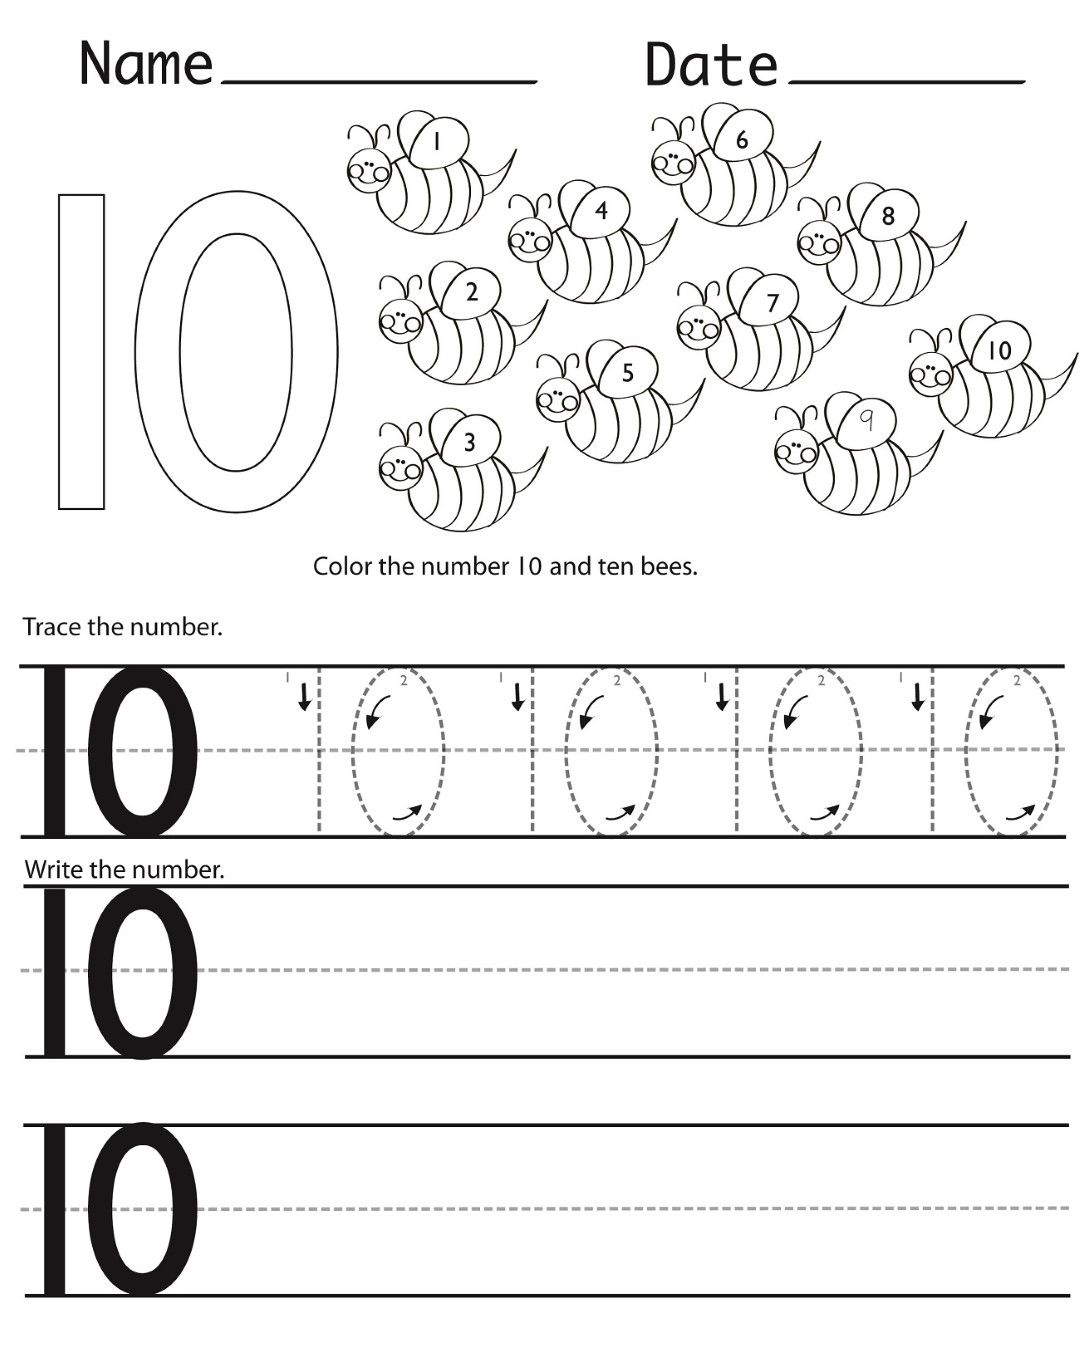 Kindergarten Coloring Pages And Worksheets With Images